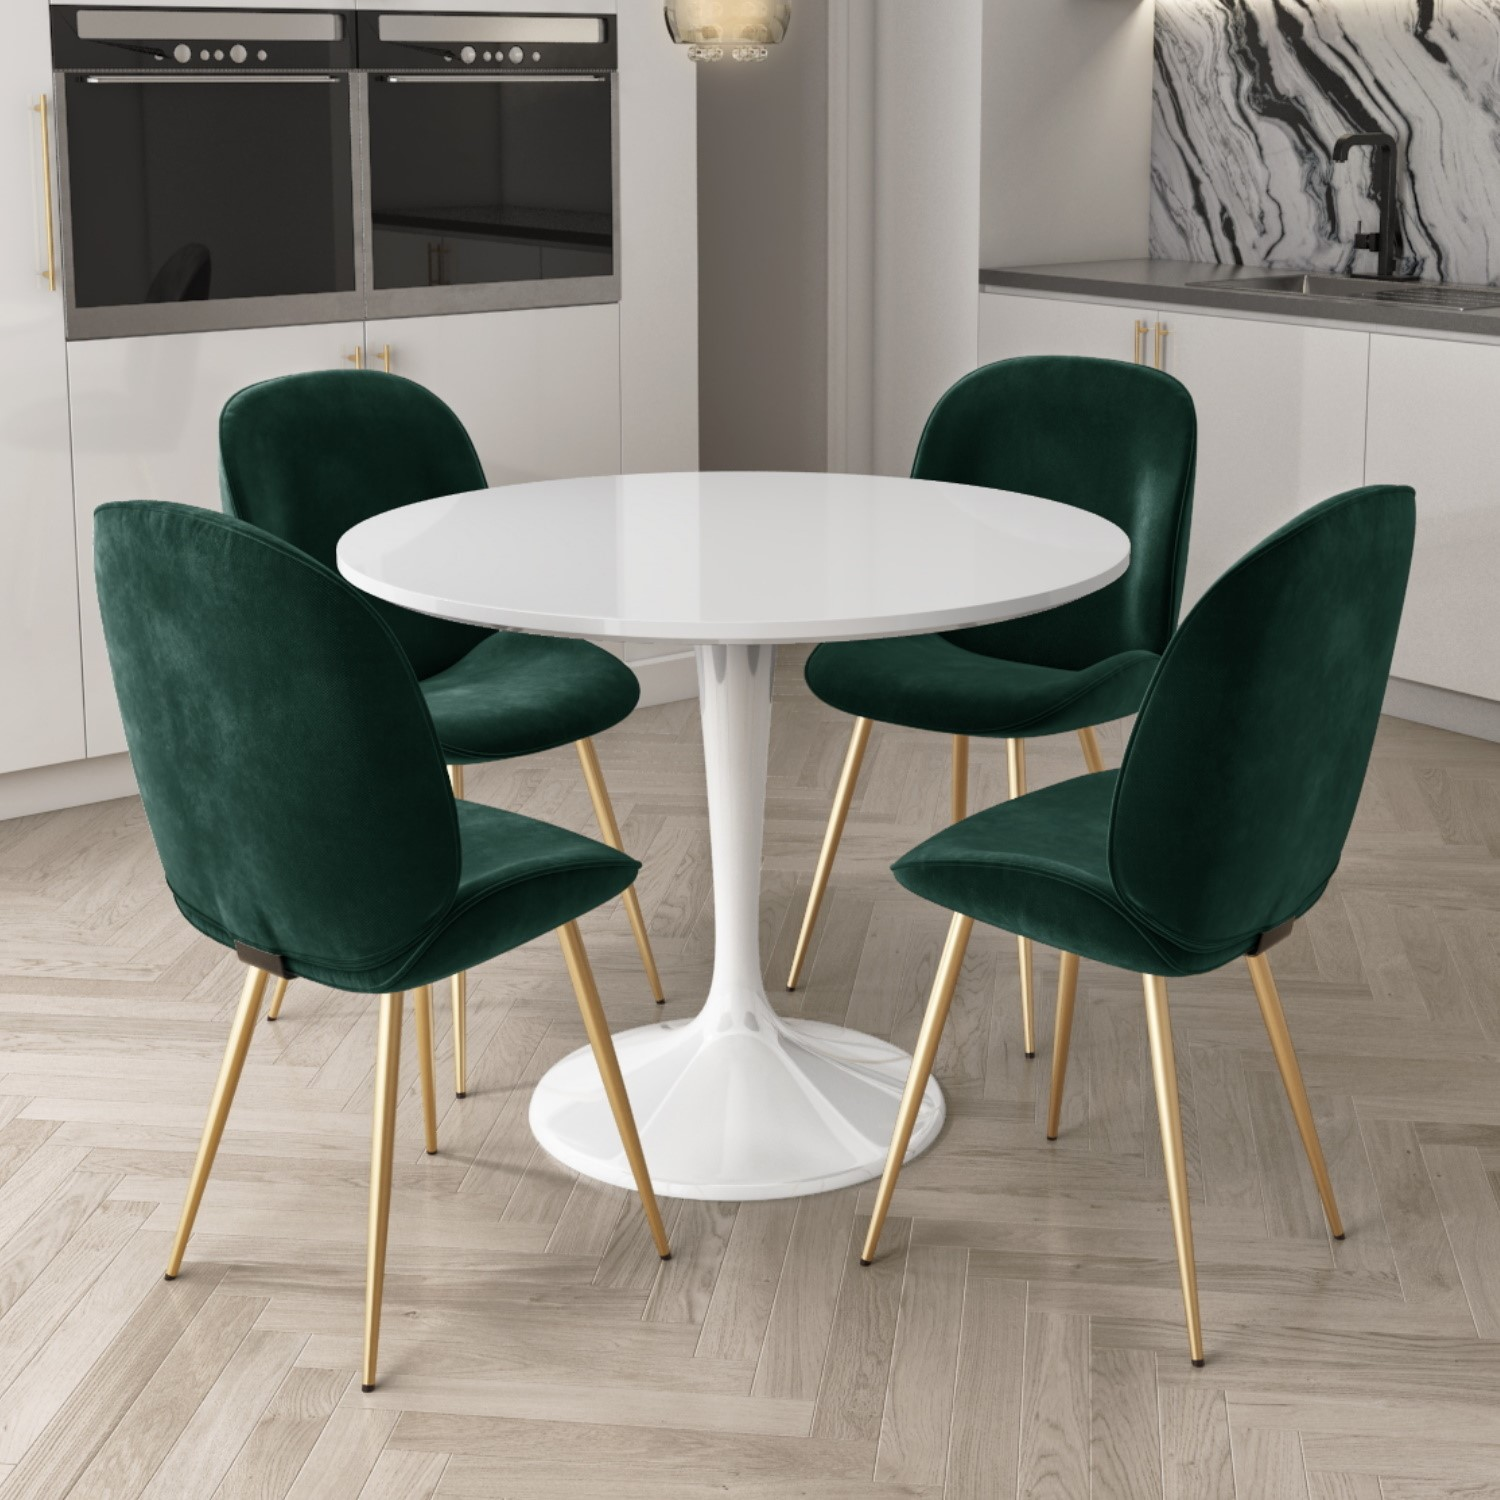 Aura White Round High Gloss Dining Table with 4 Dark Green